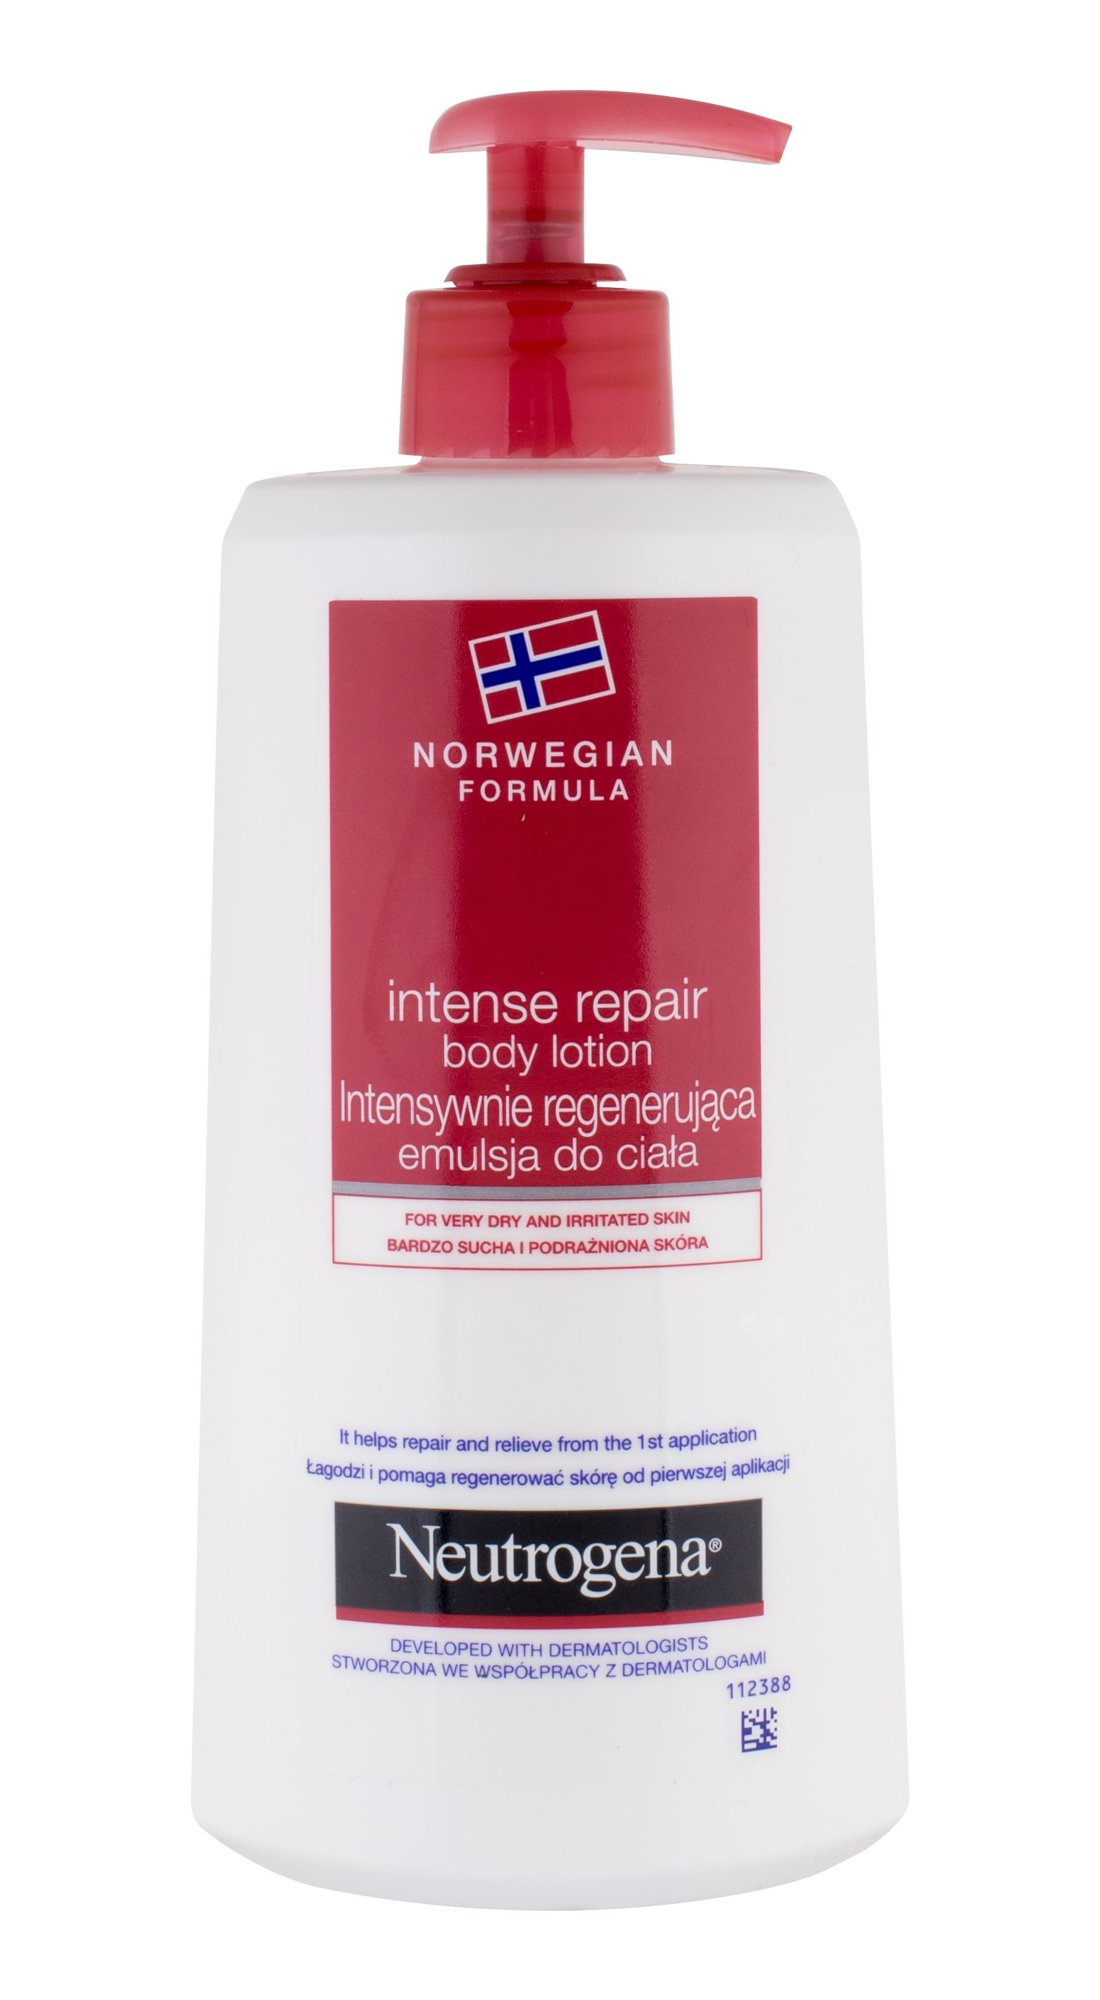 Neutrogena Norwegian Formula Cosmetic 400ml  Intense Repair